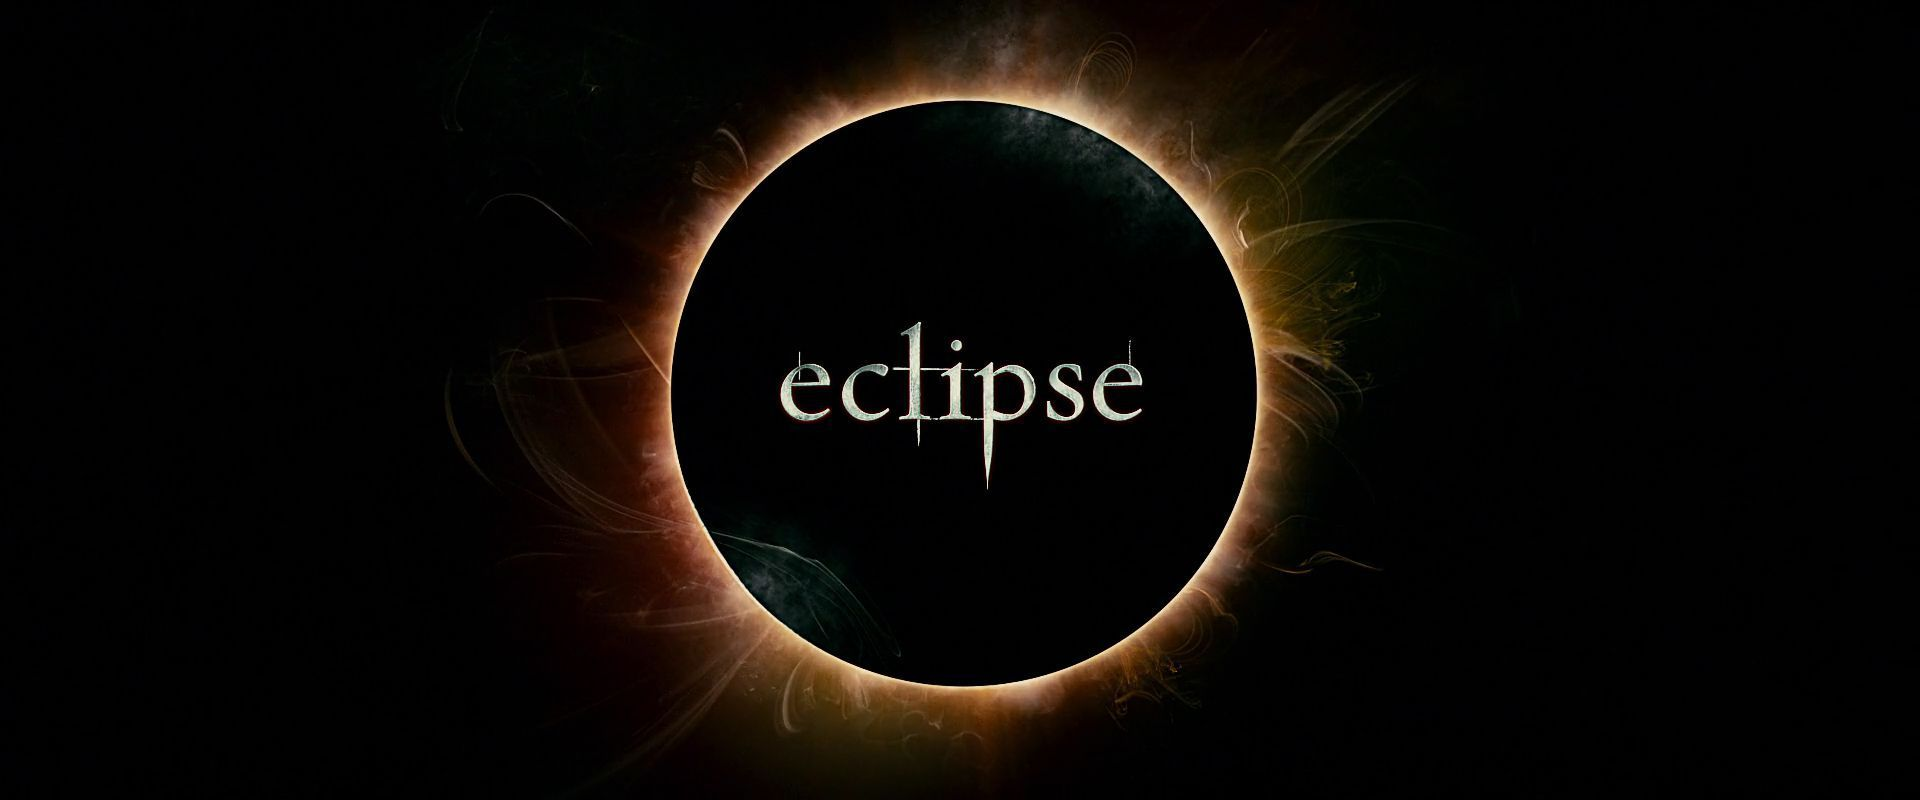 twilight series images eclipse - photo #43